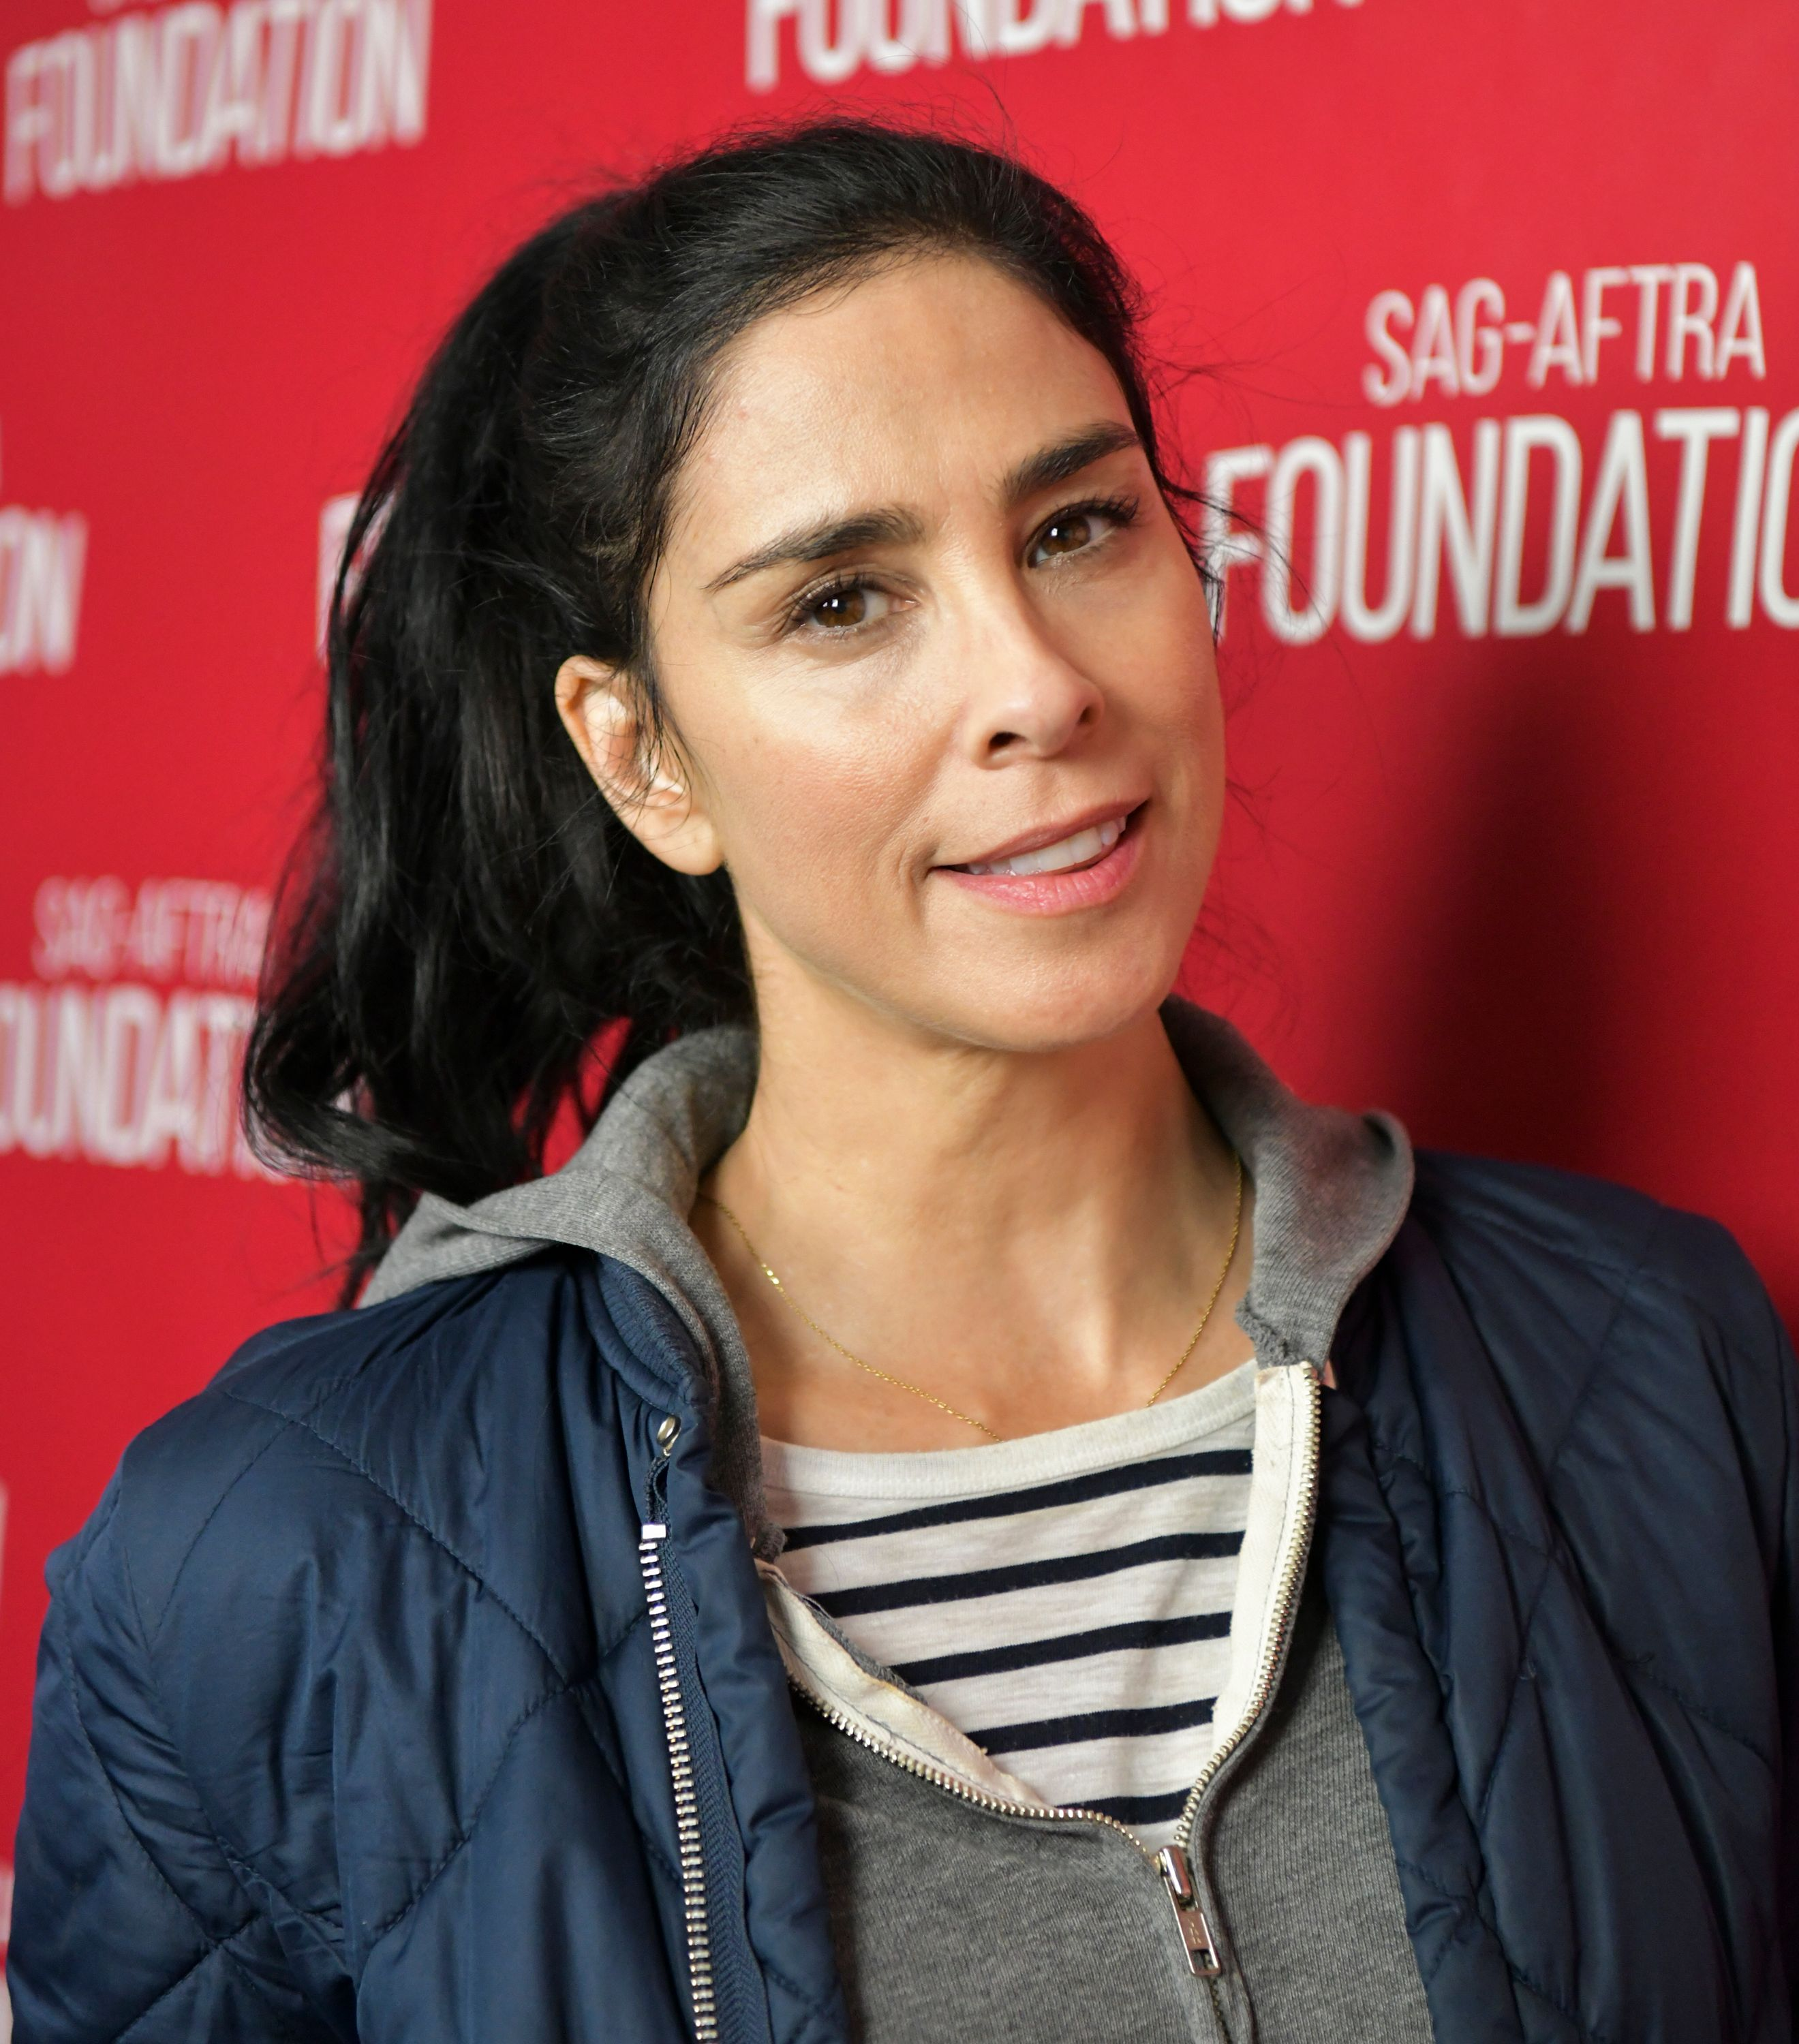 Sarah Silverman Returns to Late Night With HBO Pilot